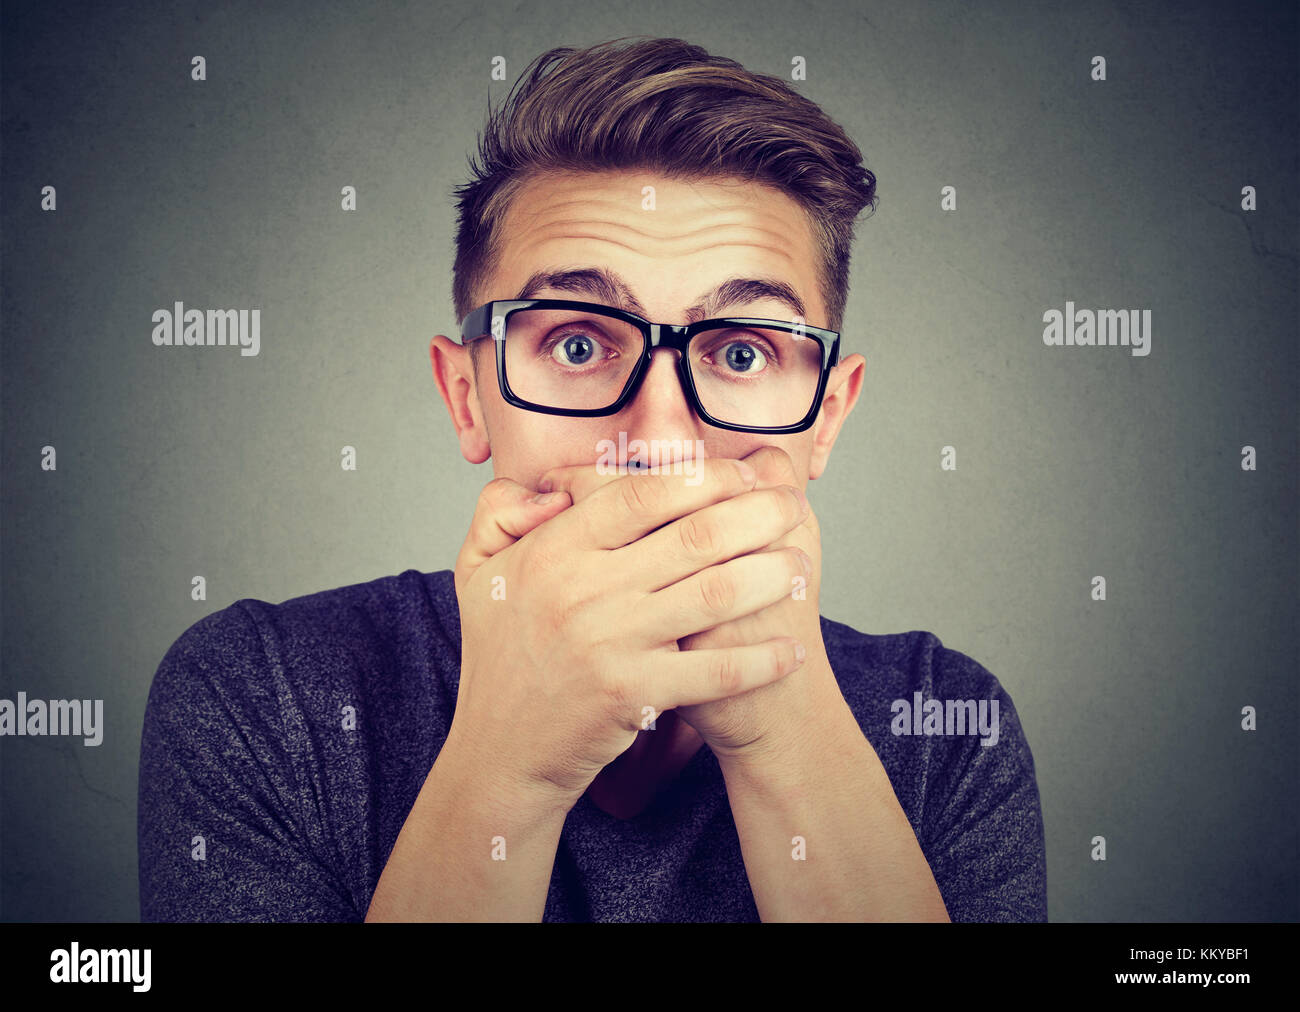 Portrait of a shocked young man covering his mouth with hands - Stock Image